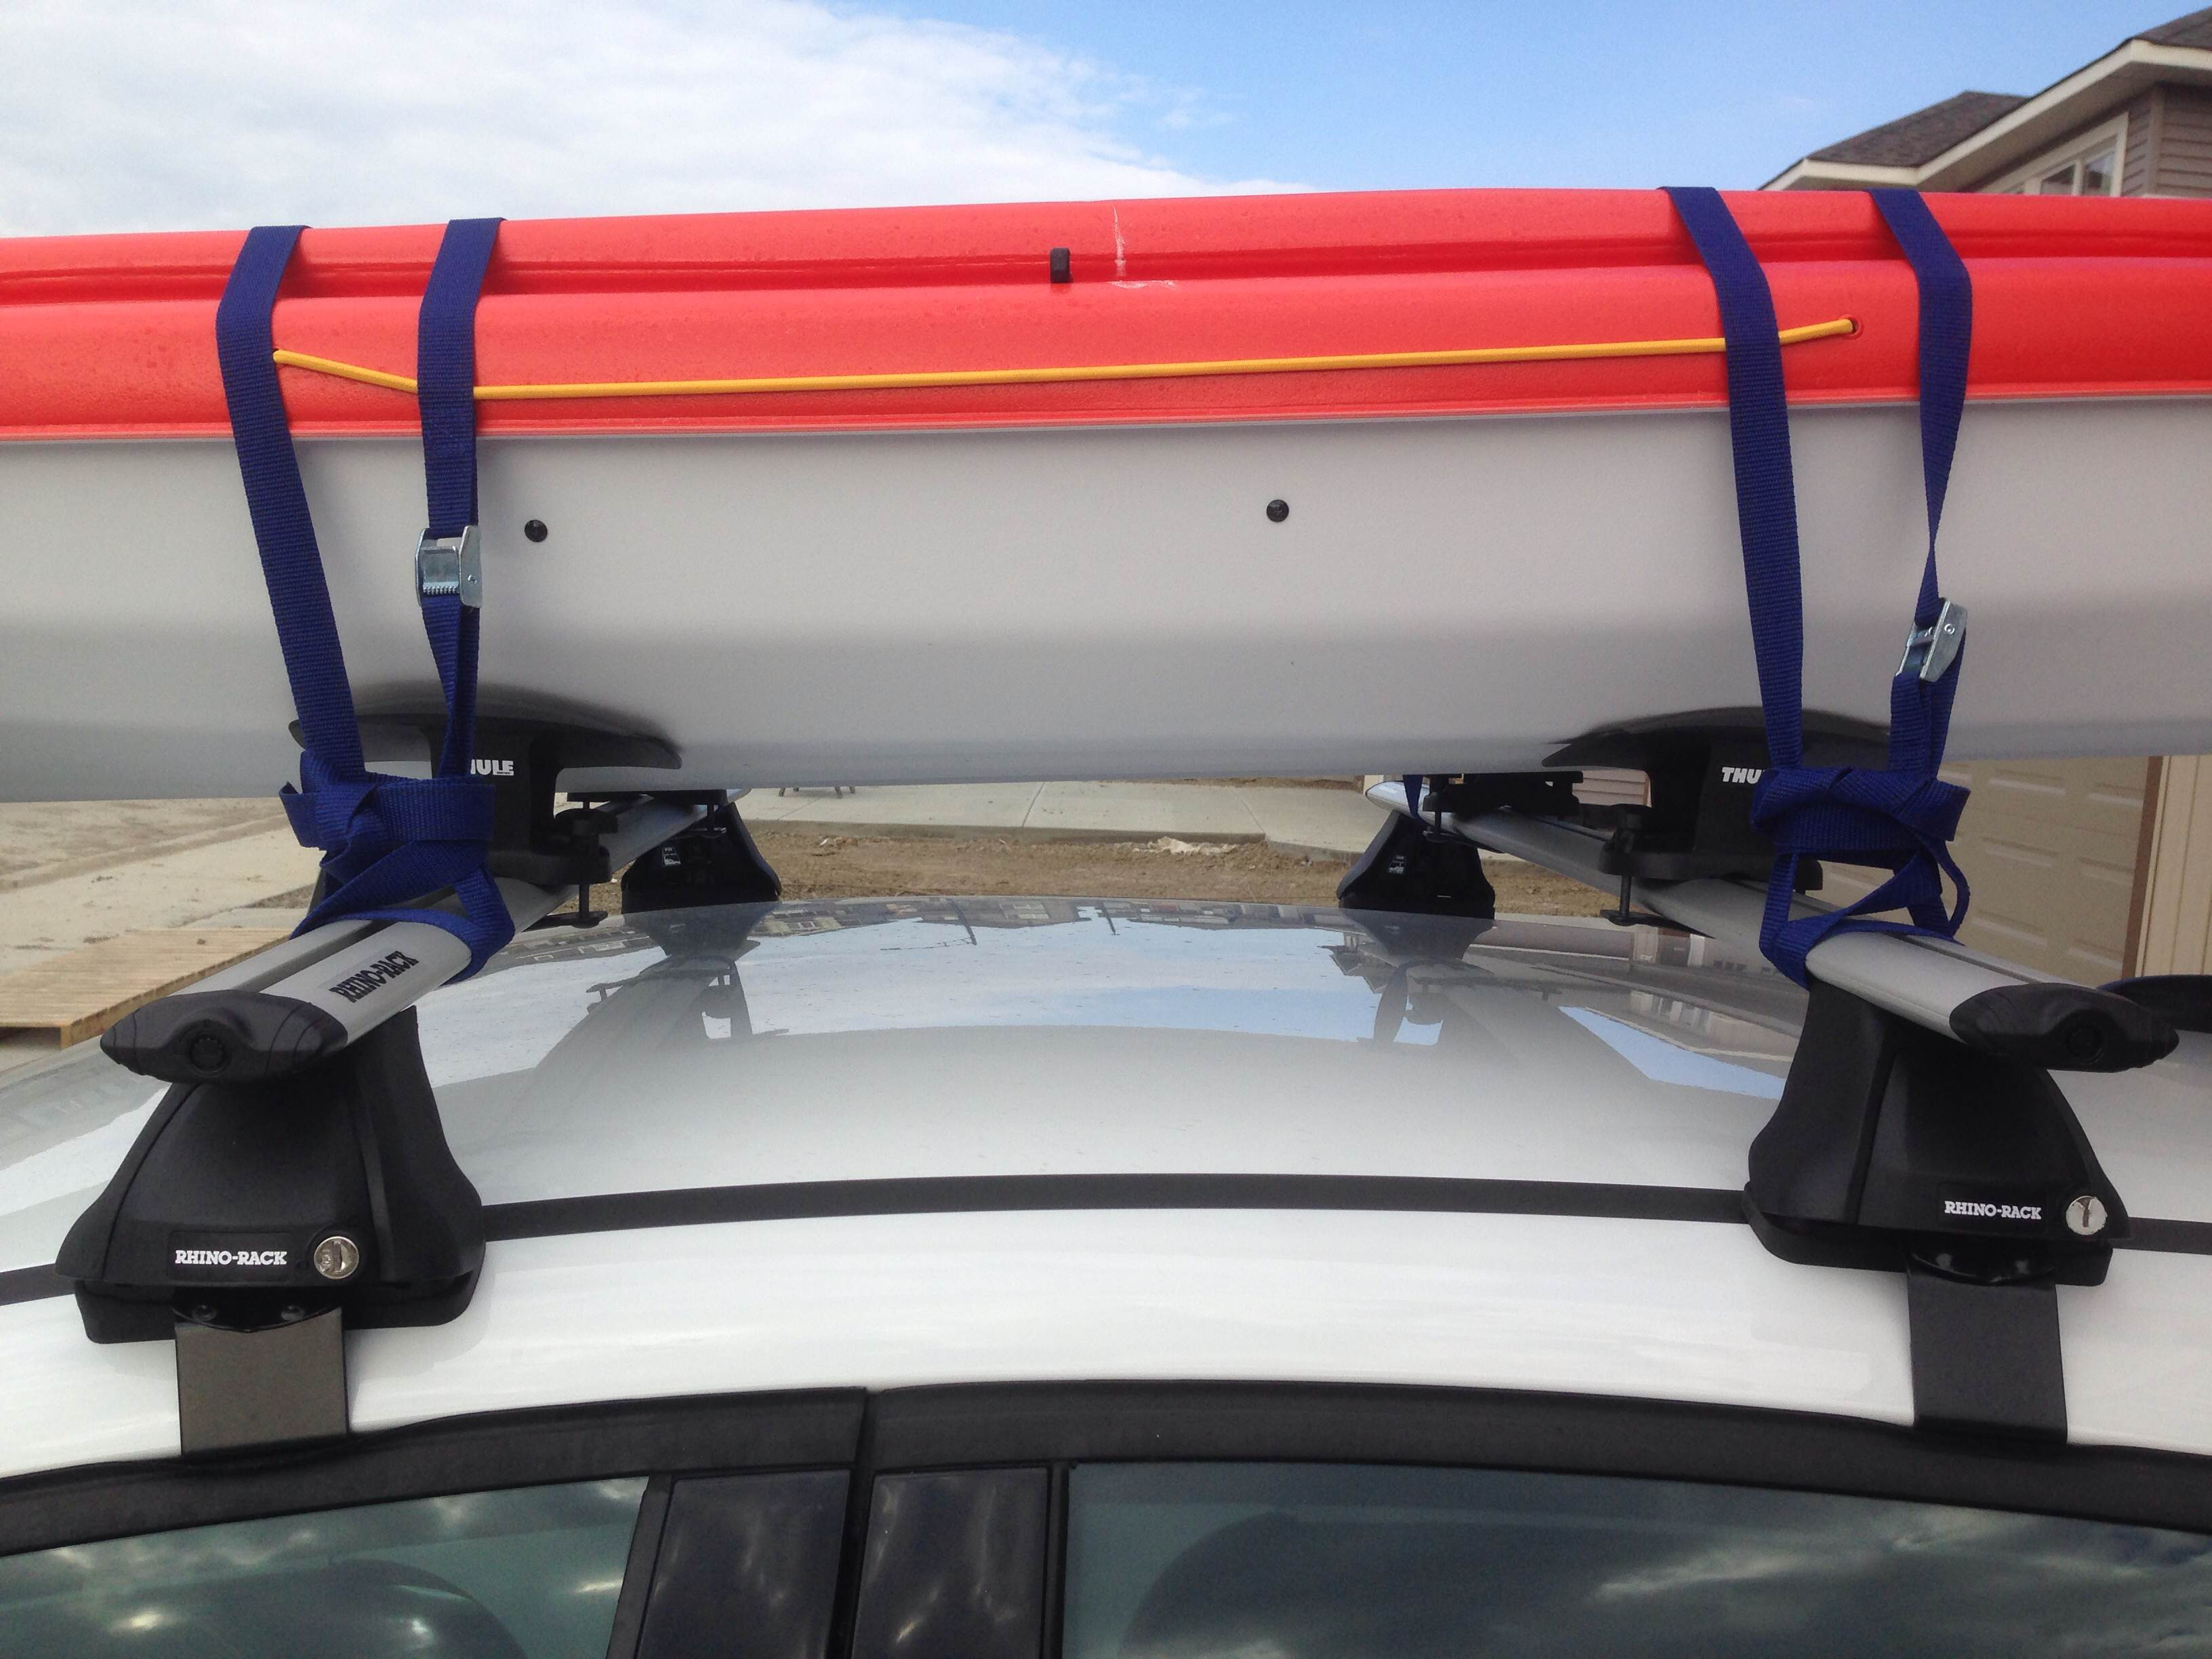 Marvelous How To Secure A Kayak On The Car Roof (Pelican Unison 136T Tandem Kayak On  A Small Car Ford Focus 2013)